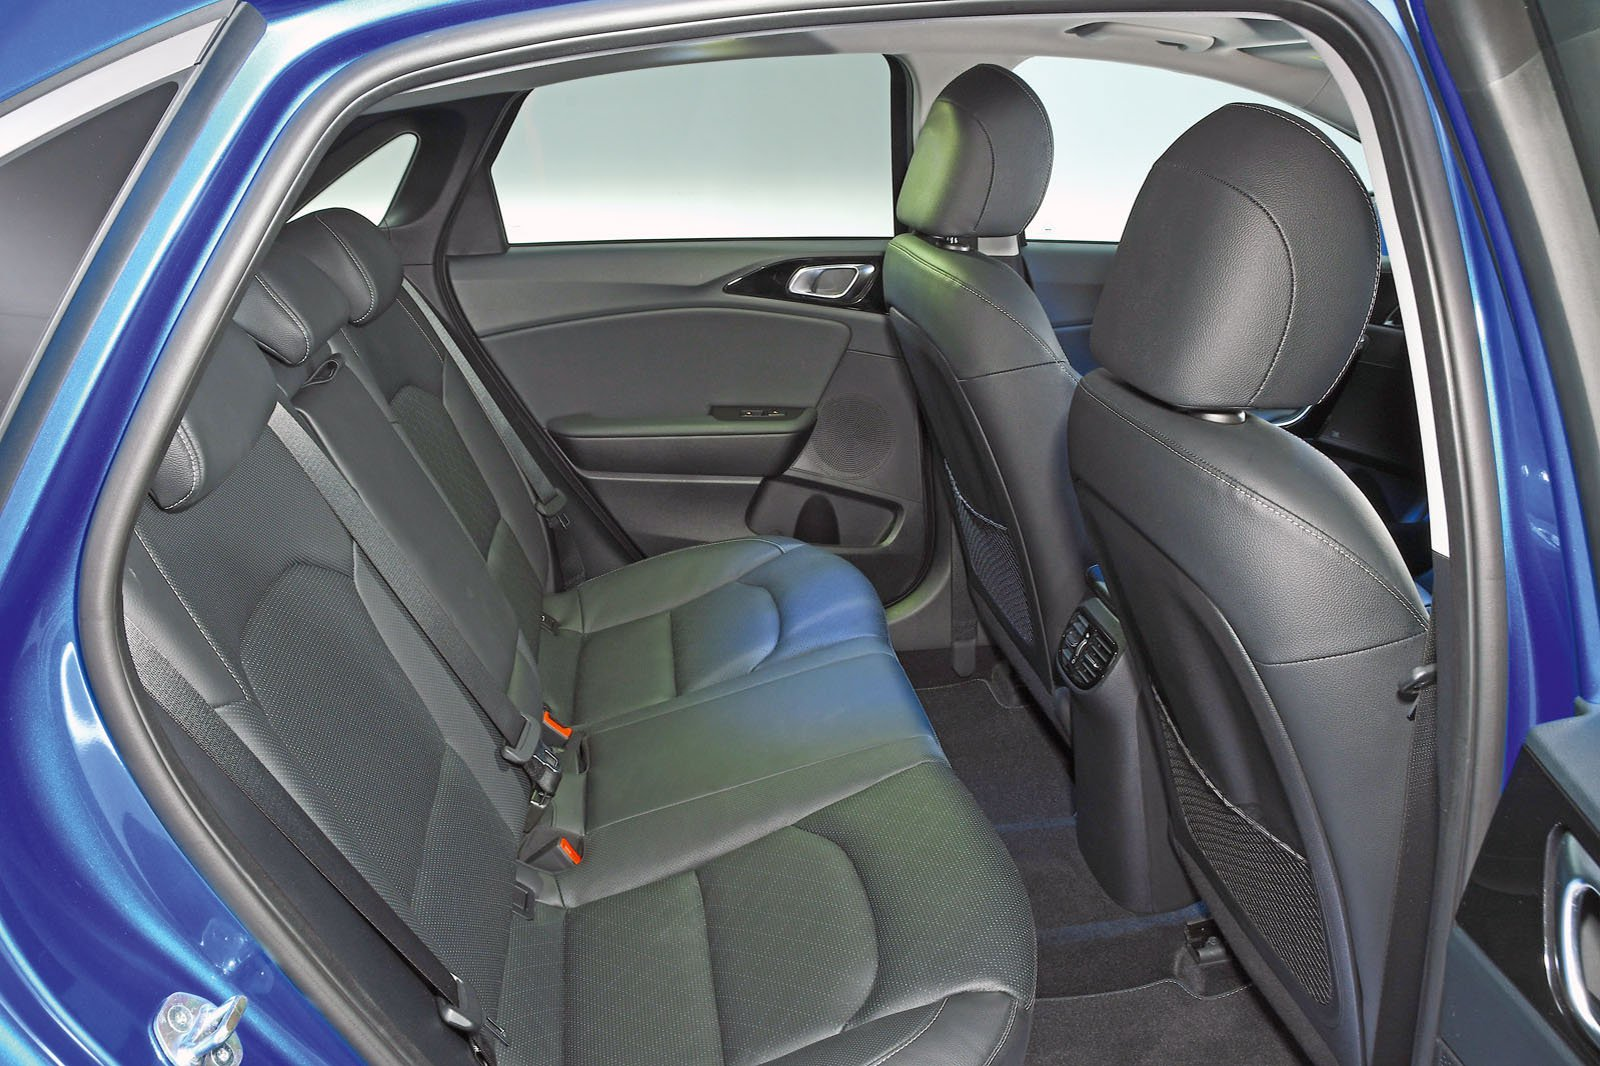 Kia Ceed rear seats